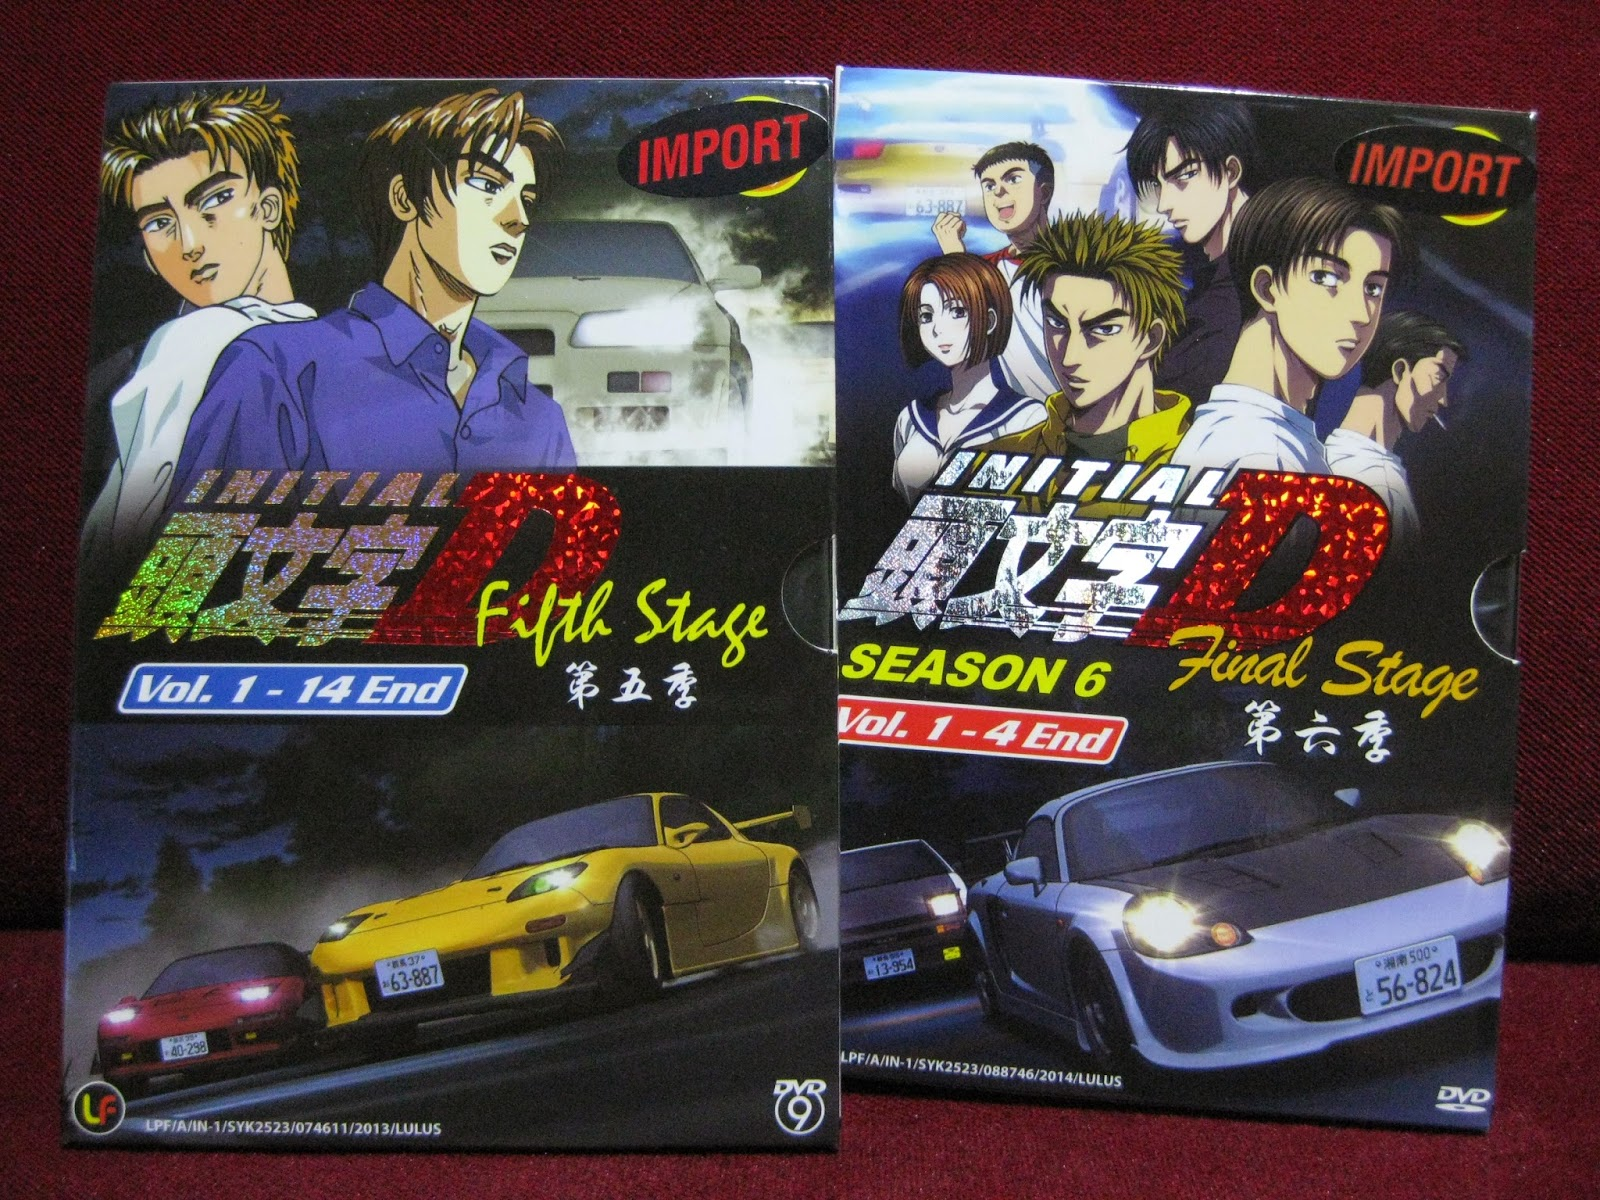 desmond collection dvd initial d fifth stage and final stage. Black Bedroom Furniture Sets. Home Design Ideas